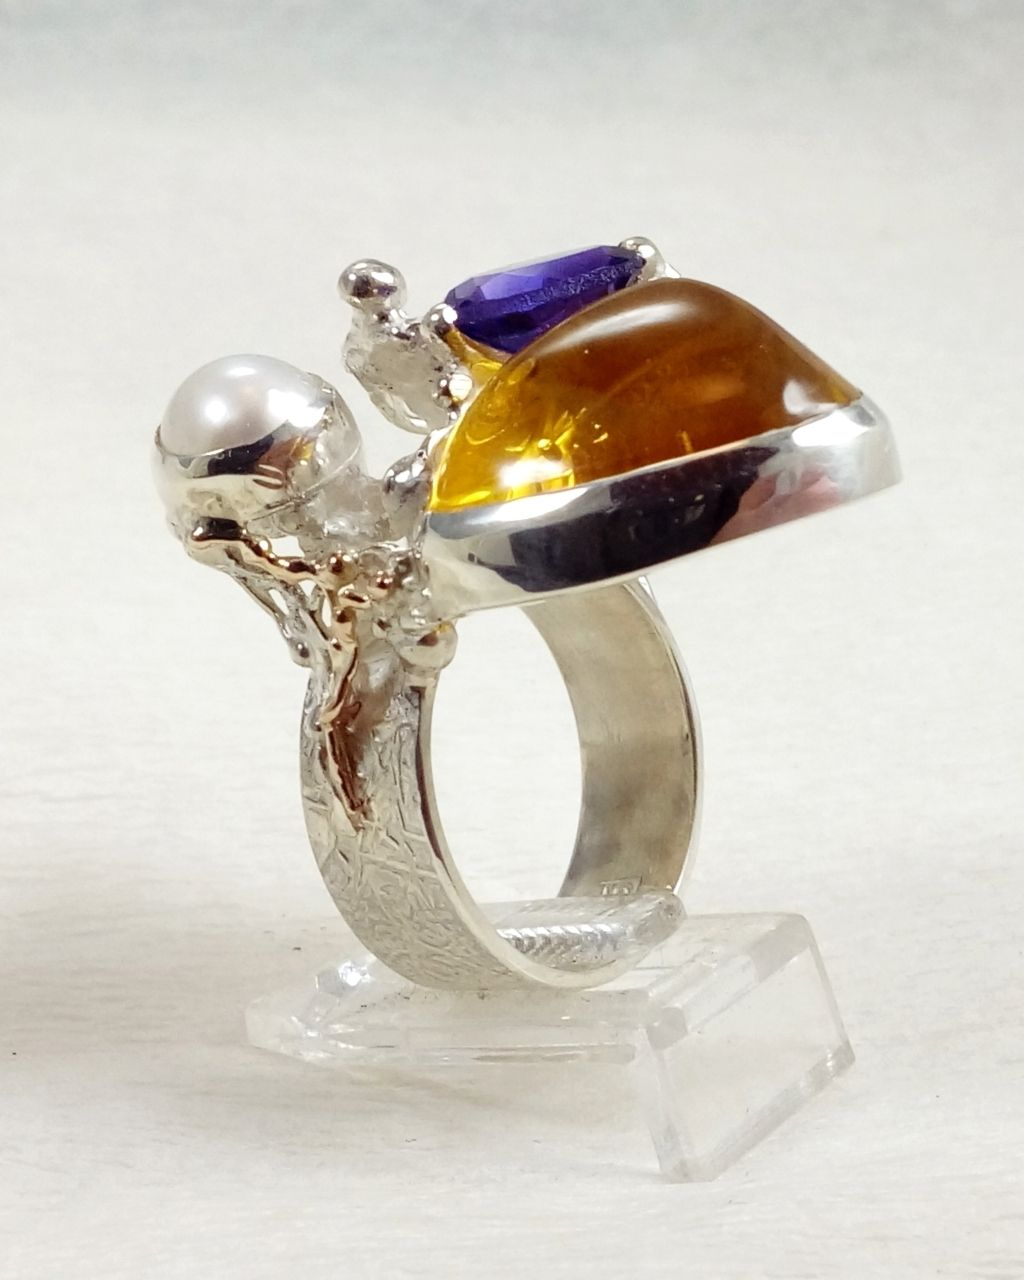 Gregory Pyra Piro ring 3045, Gregory Pyra Piro art jewellery, one of a kind jewellery with amethyst and amber, handcrafted jewellery with gemstones and pearls, handcrafted jewellery sold in art and craft galleries, mixed metal jewellery with gemstones and pearls, artists during lockdown, jewellery makers during lockdown, rings made during lockdown